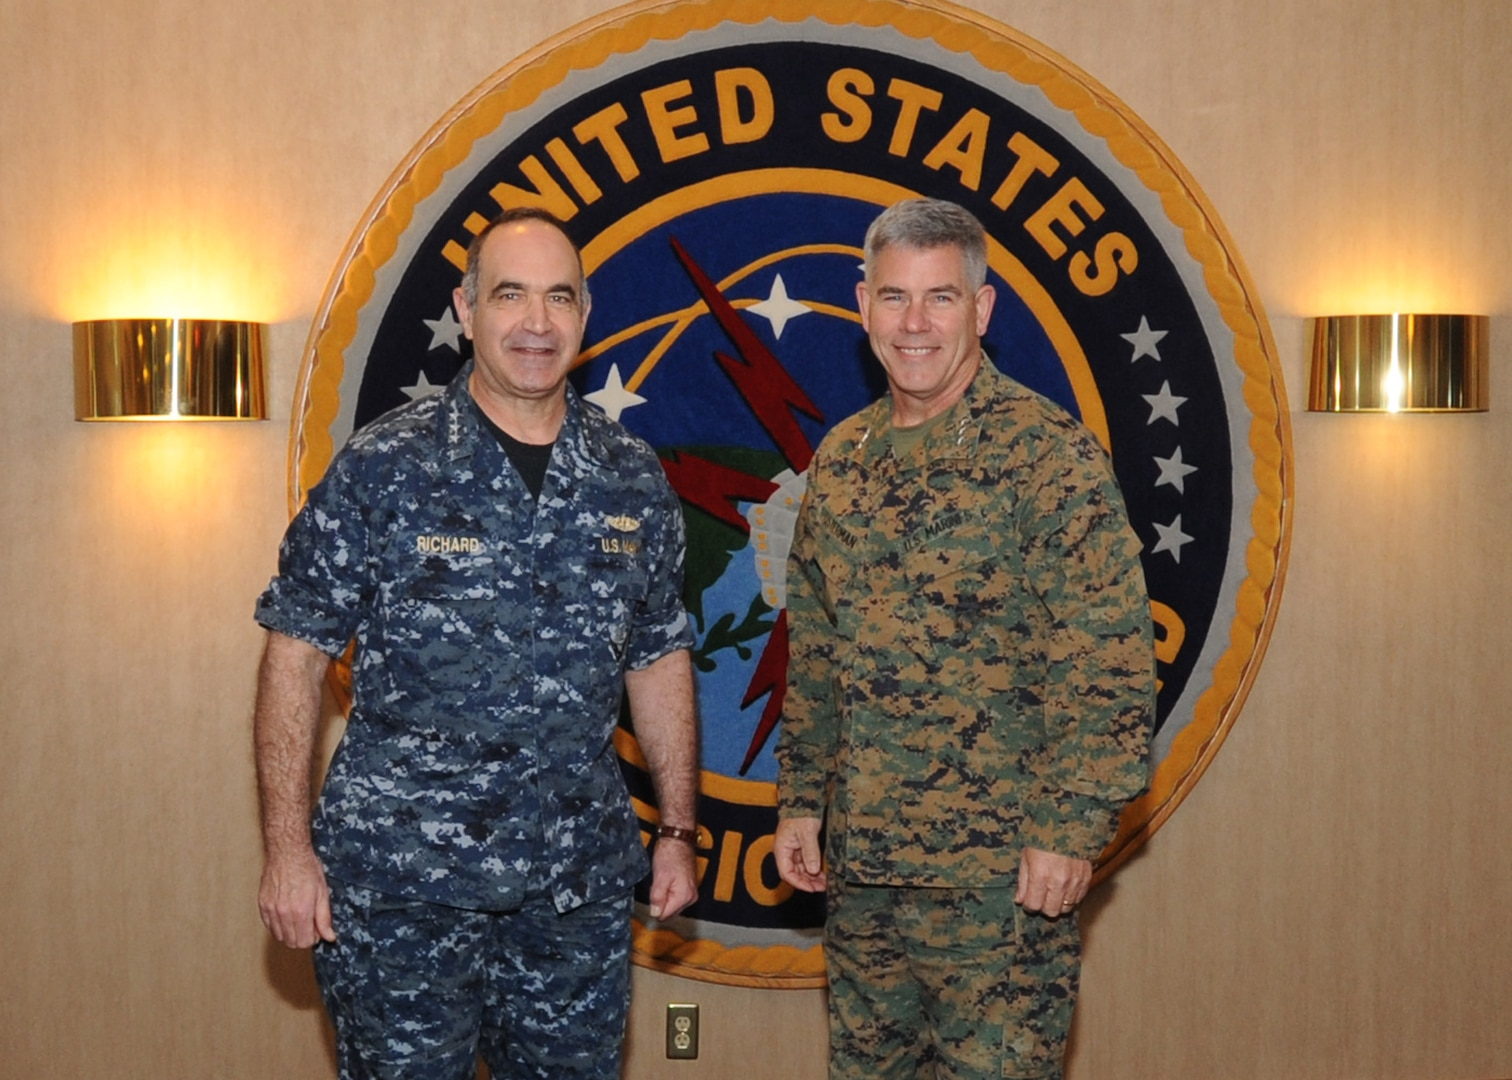 """Marine Corps Lt. Gen.  Joseph L. Osterman, right, U.S. Special Operations Command deputy commander, meets with Navy Vice Adm. Charles """"Chas"""" A. Richard, U.S. Strategic Command (USSTRATCOM) deputy commander, during his visit to USSTRATCOM Headquarters, Offutt Air Force Base, Nebraska, Jan. 18, to discuss the transfer of the Unified Command Plan-assigned Countering Weapons of Mass Destruction mission, ensuring full coordination of resources and mission responsibilities with senior leaders."""